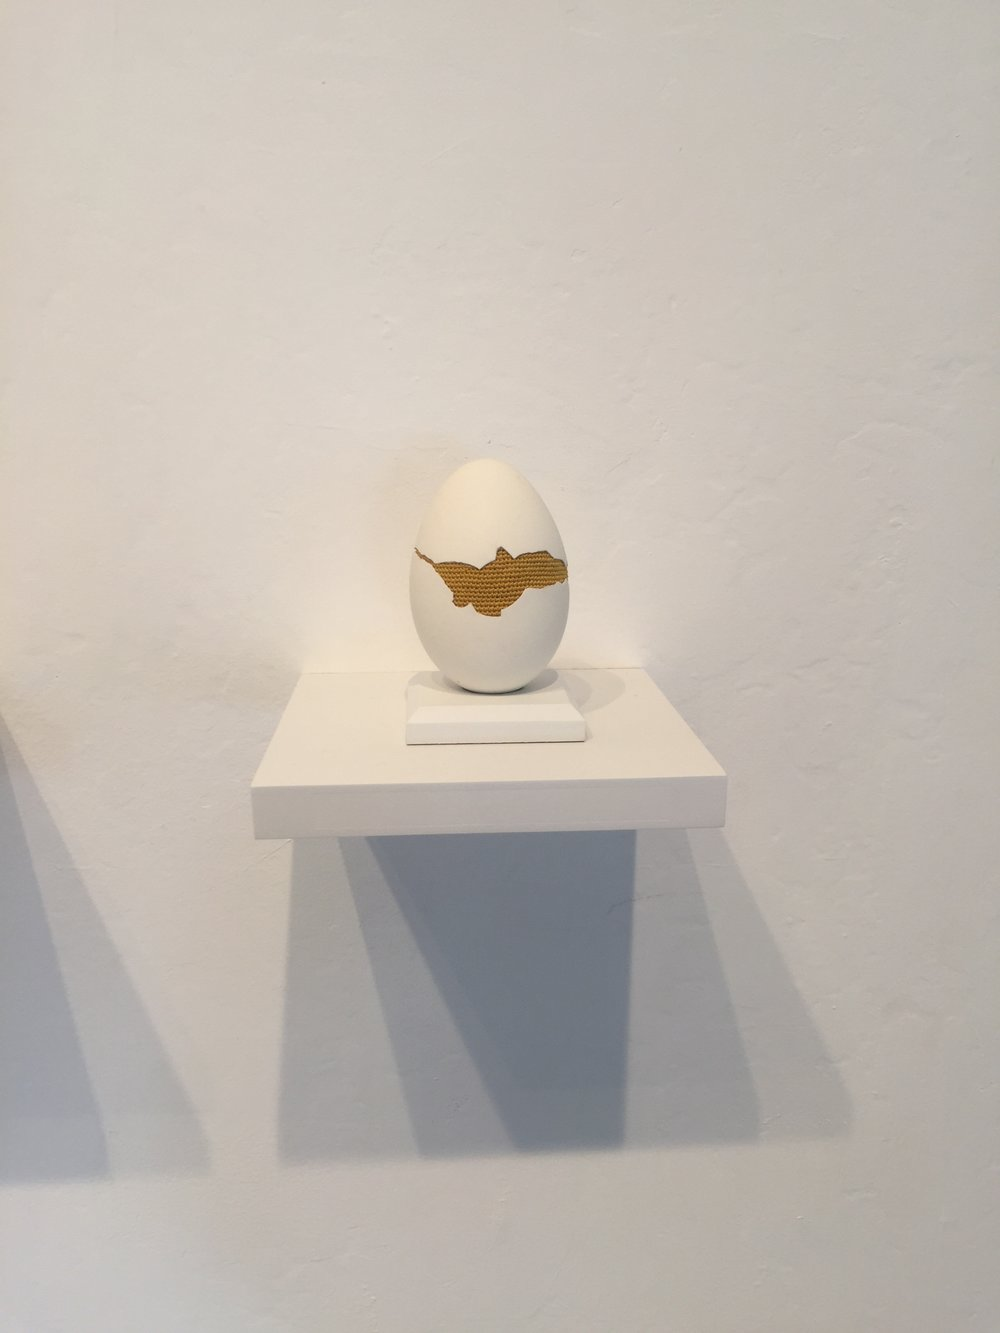 """Esther Traugot, """"Patched Goose Egg #7,"""" 2018, goose egg shell, dyed cotton string, wood mount and shelf, 4.75 x 6 x 6 inches"""